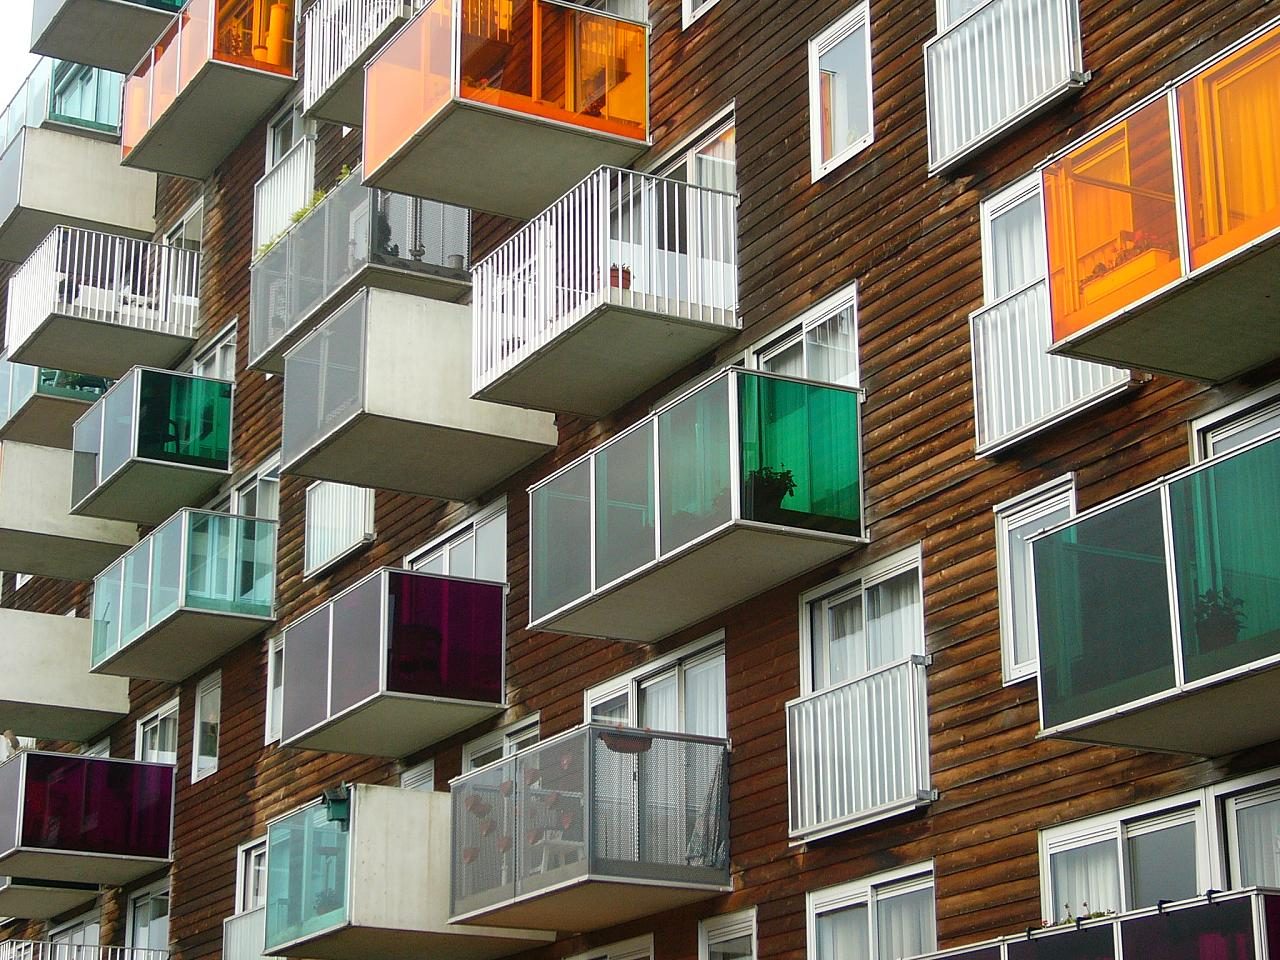 MVRDV- Wozoco Housing by Rory Hyde / CC BY SA